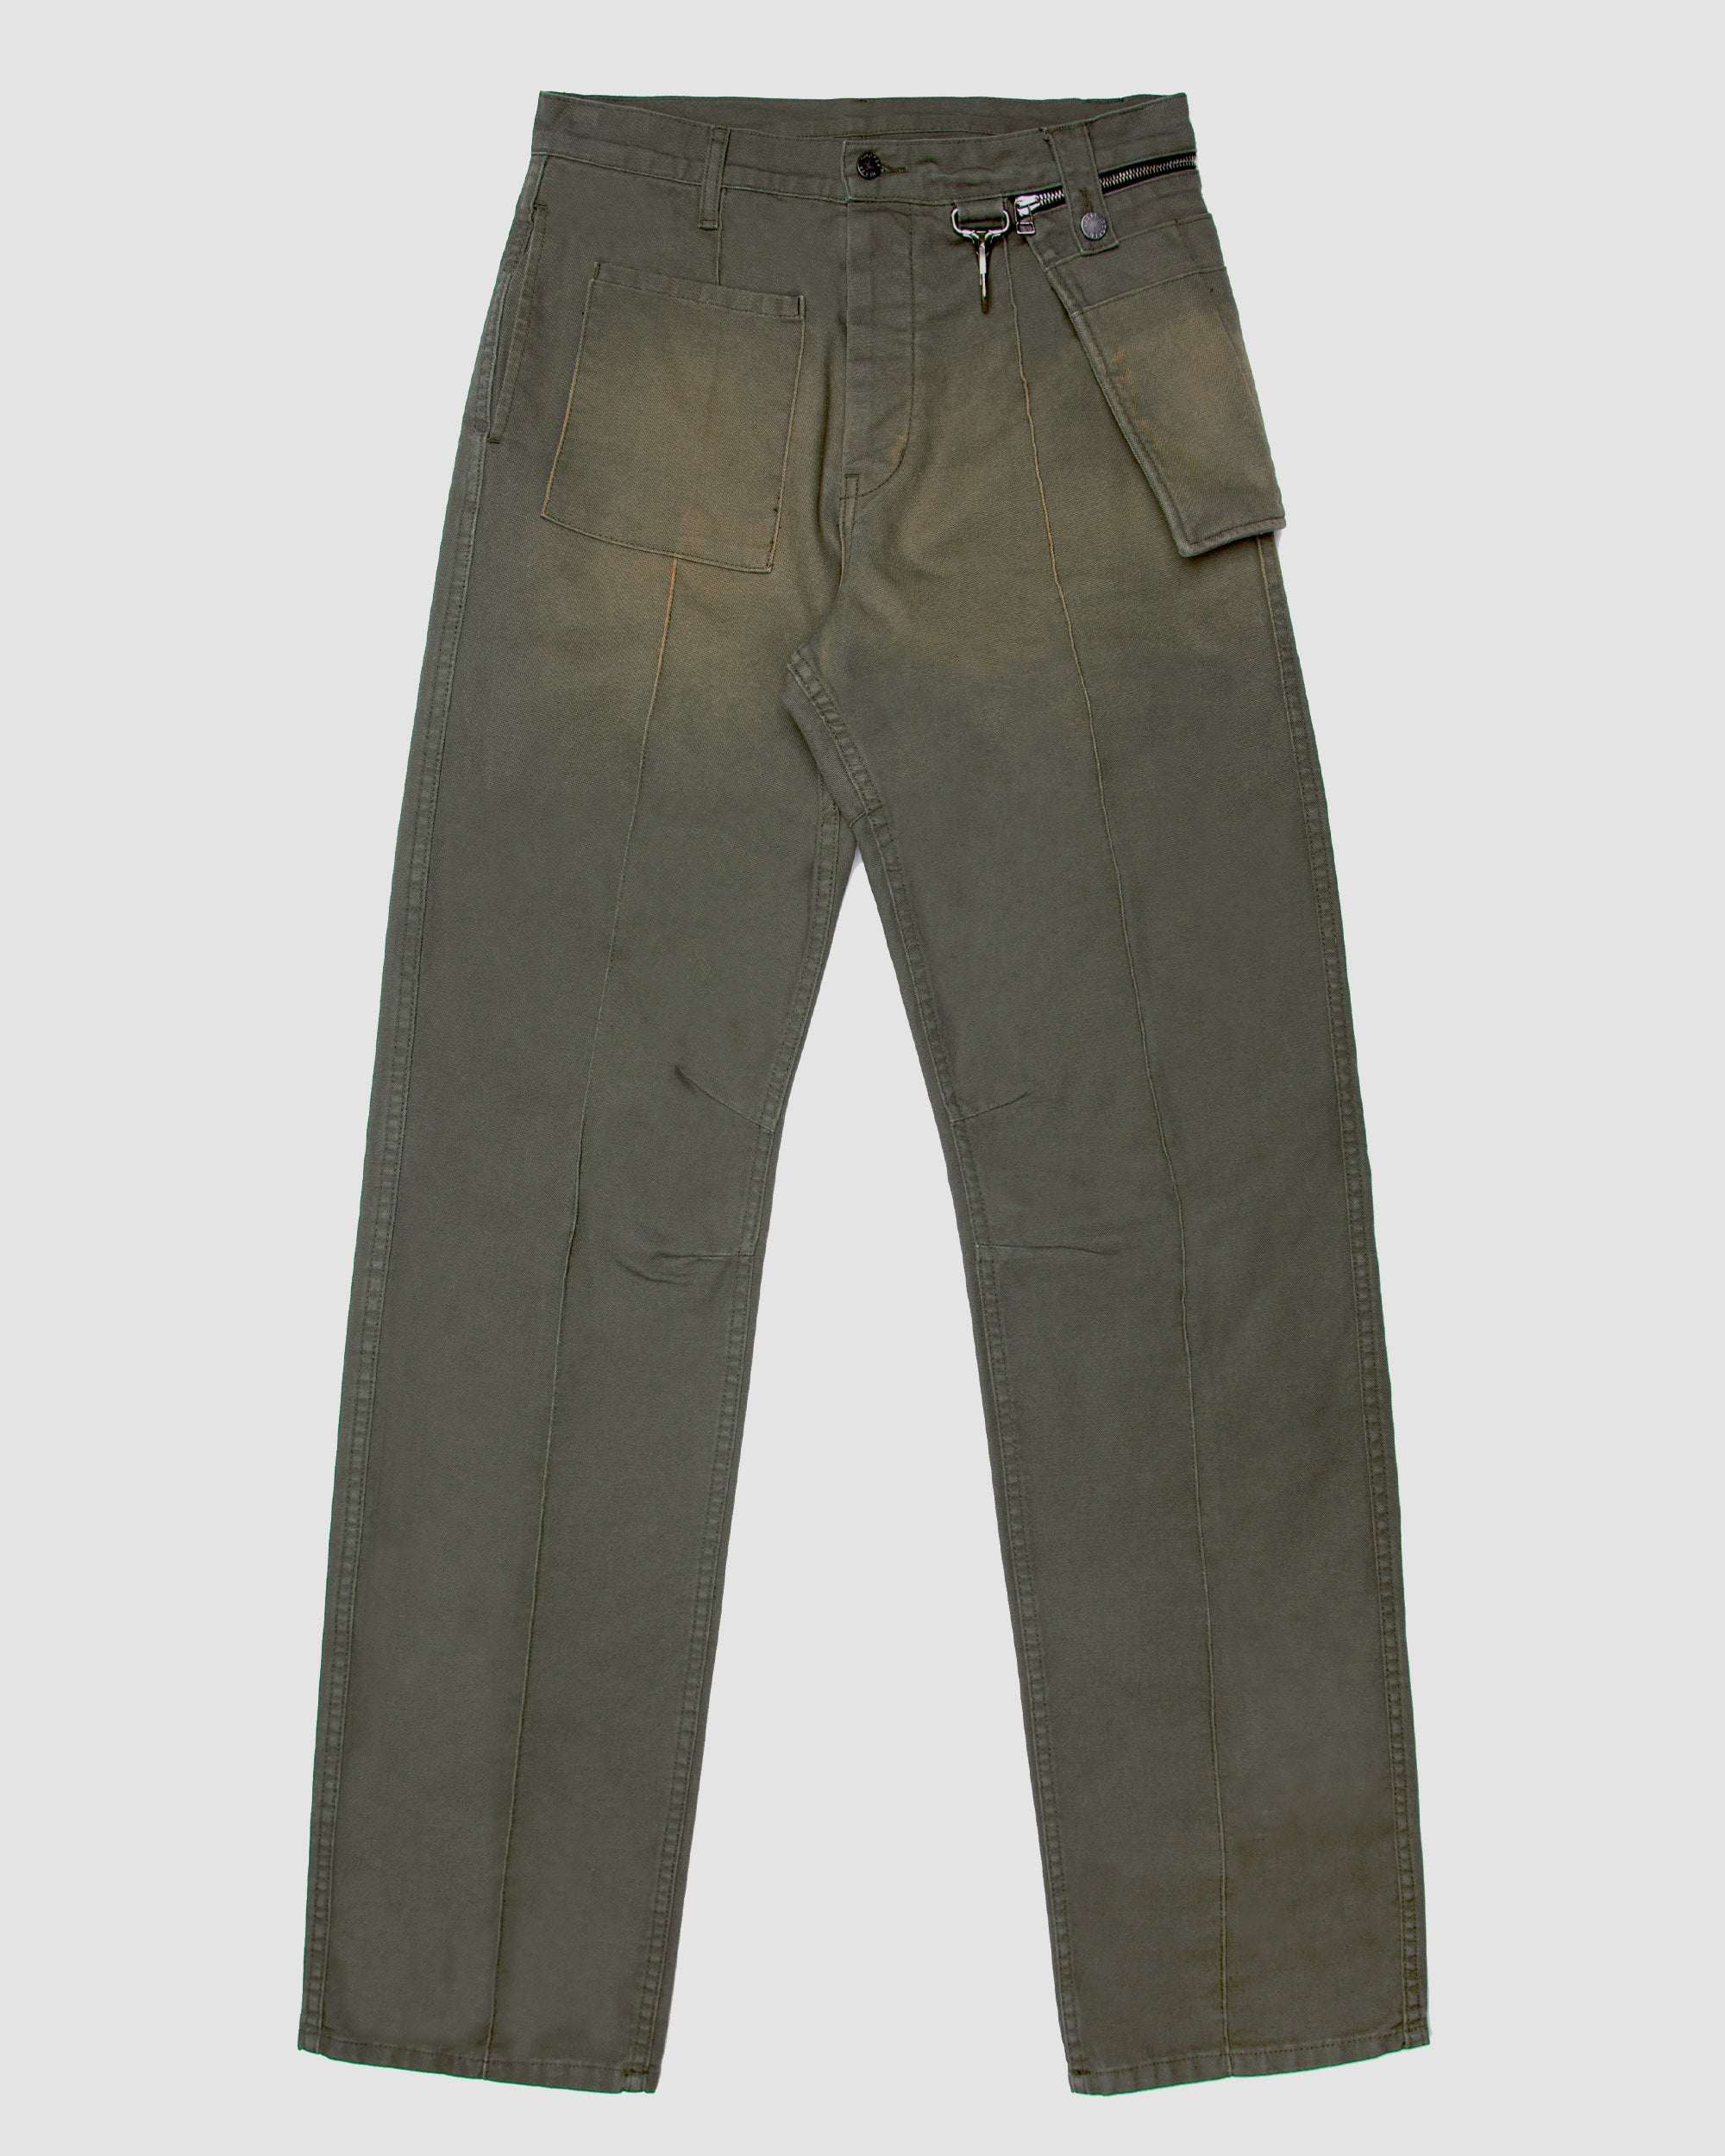 Canvas Wideleg Trouser with Zip Off Pocket in Green